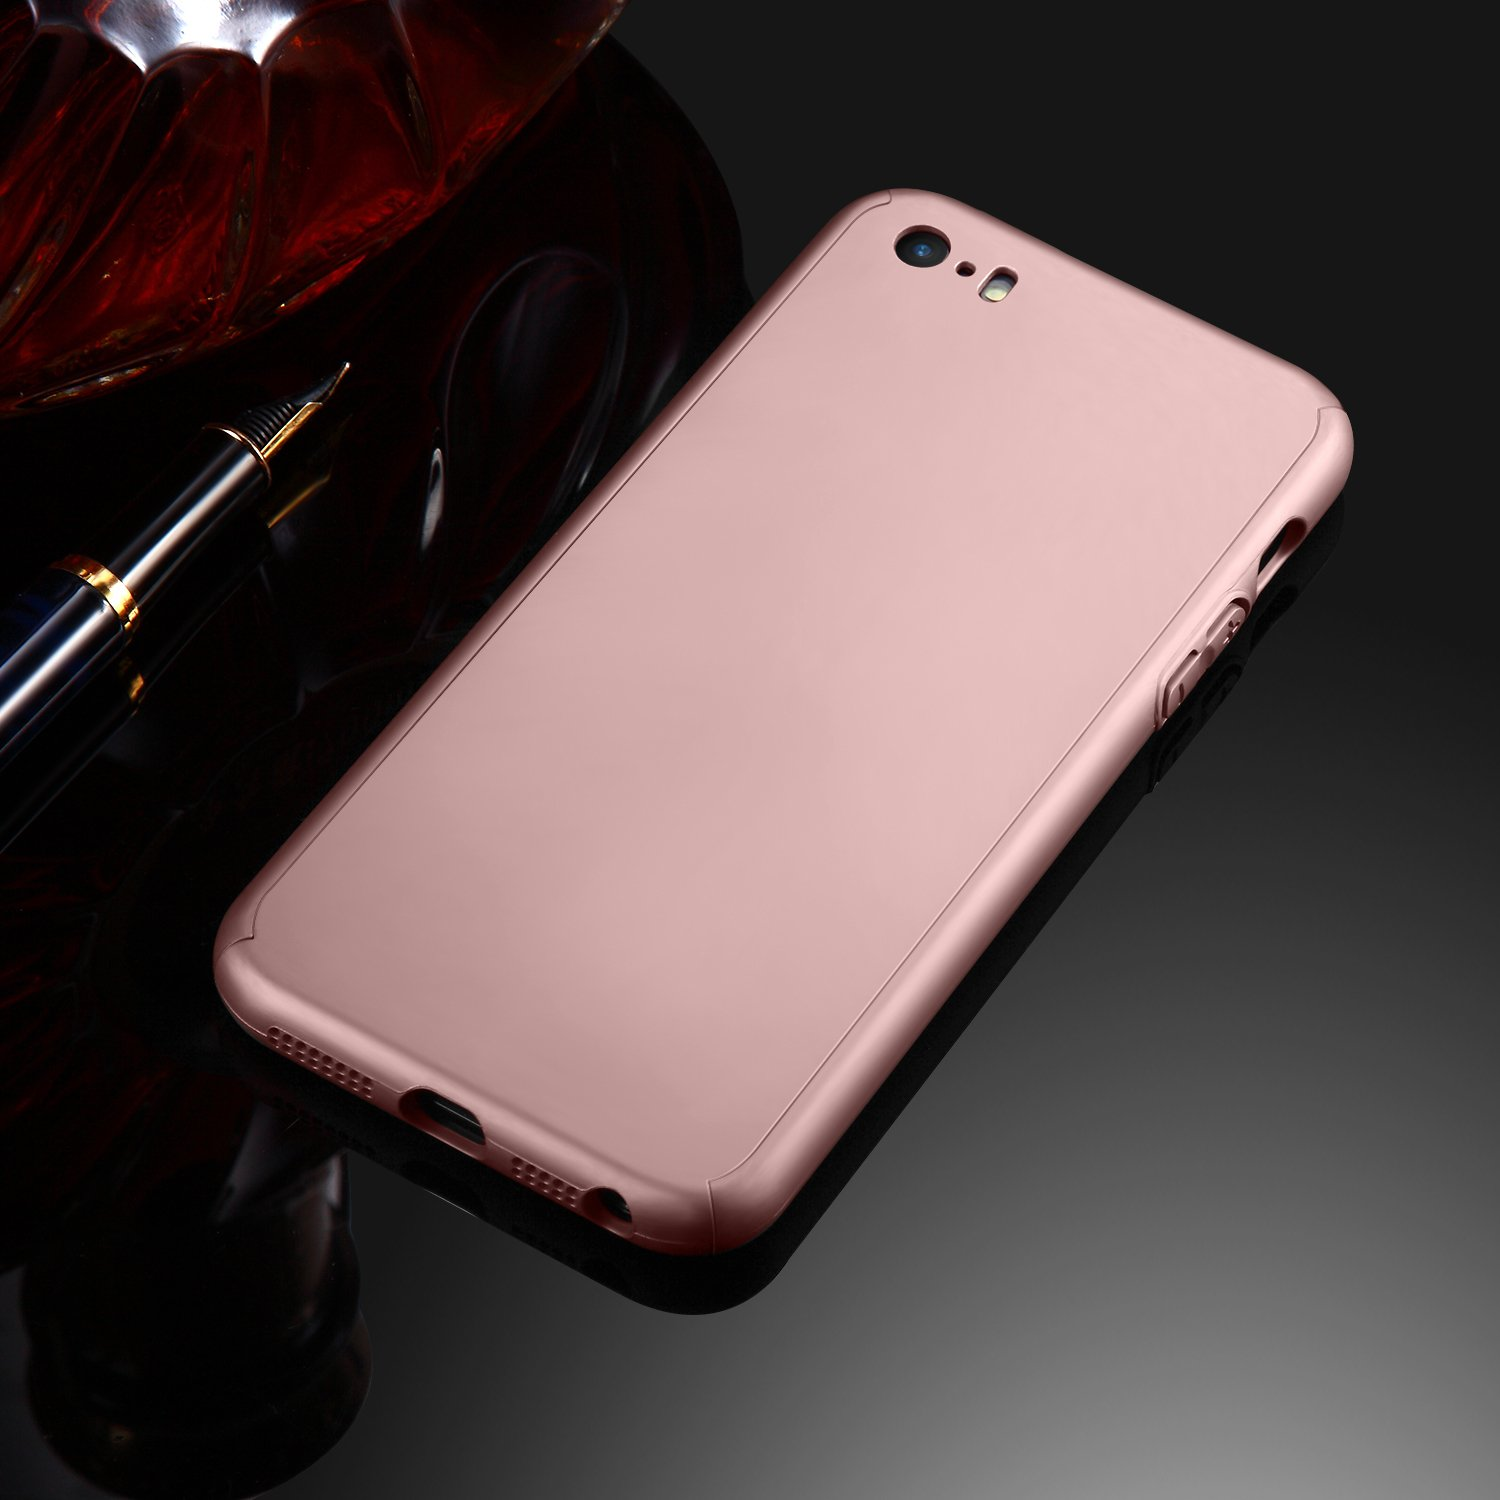 Iphone 6 Plus Case 6s Seekfull 360 Full Body Matte Protective Hard For Golden Protection Ultra Thin Slim With Tempered Glass Screen Protectorcase Apple